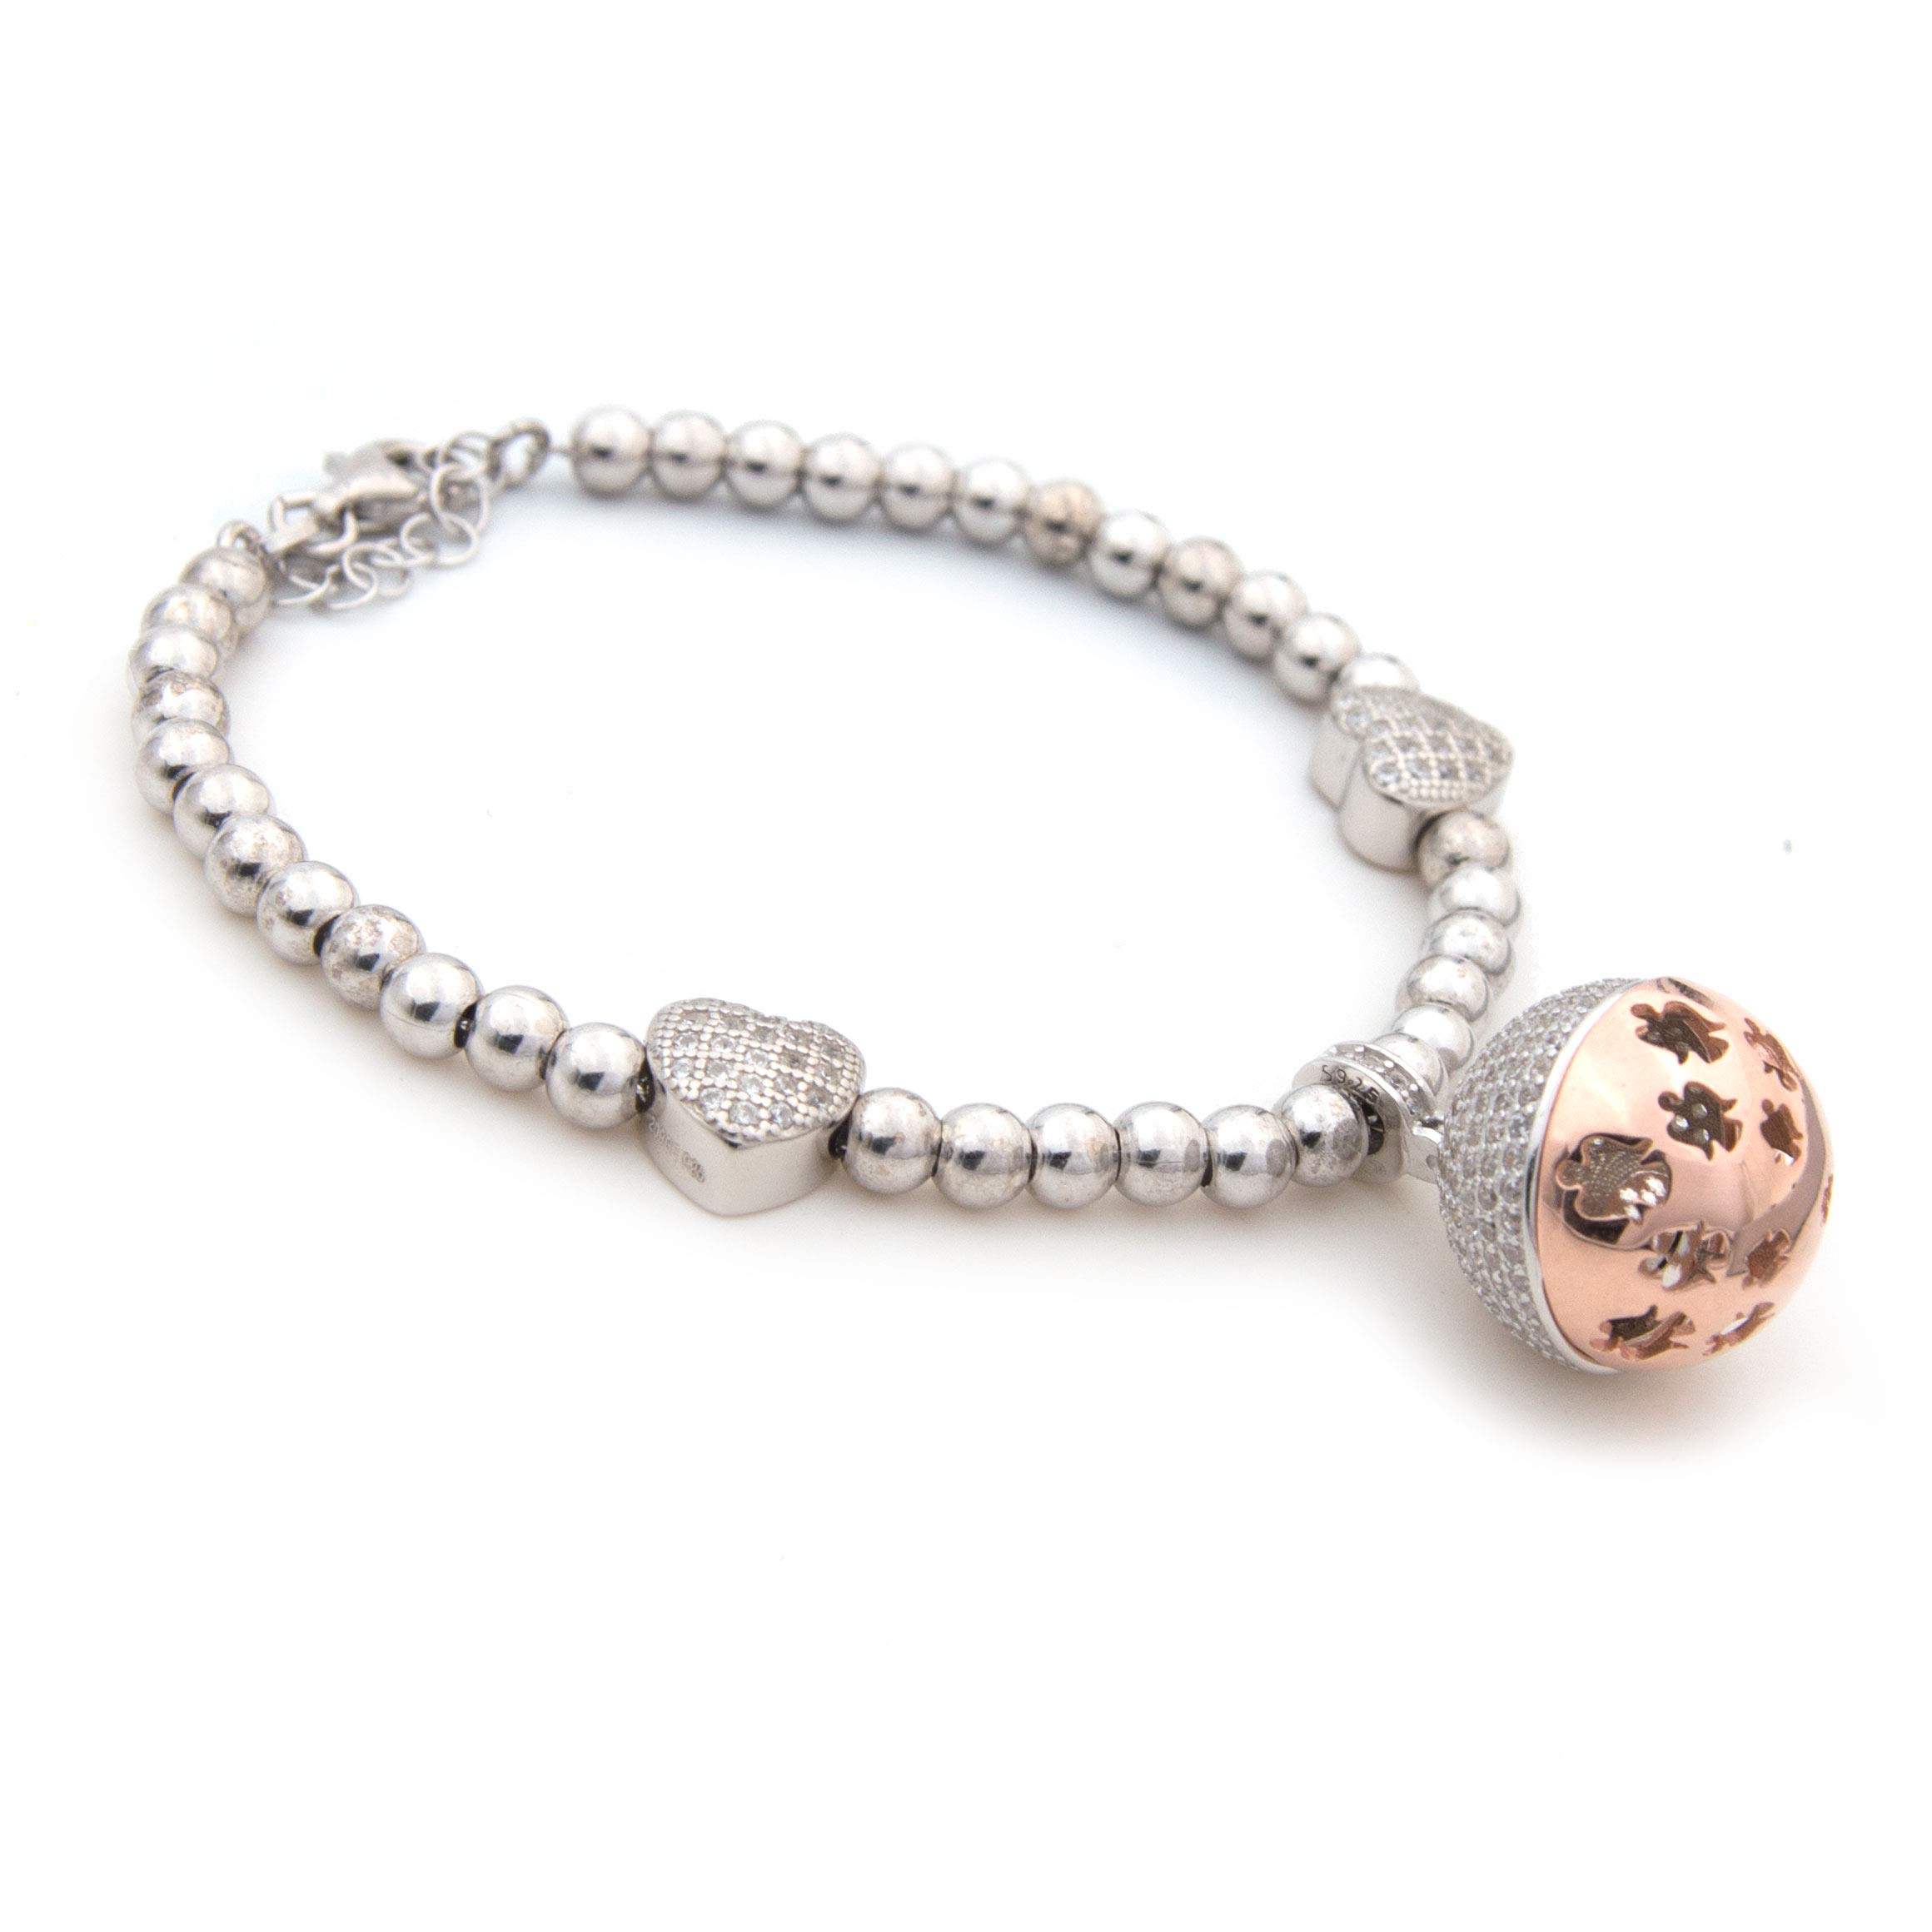 Harmony bola Angel Caller Pregnancy Bracelet with Chime Guardian Angels Hearts Cubic Zirconia Pendant Gift Woman Girl 925 Silver Plated in White and Rose Gold